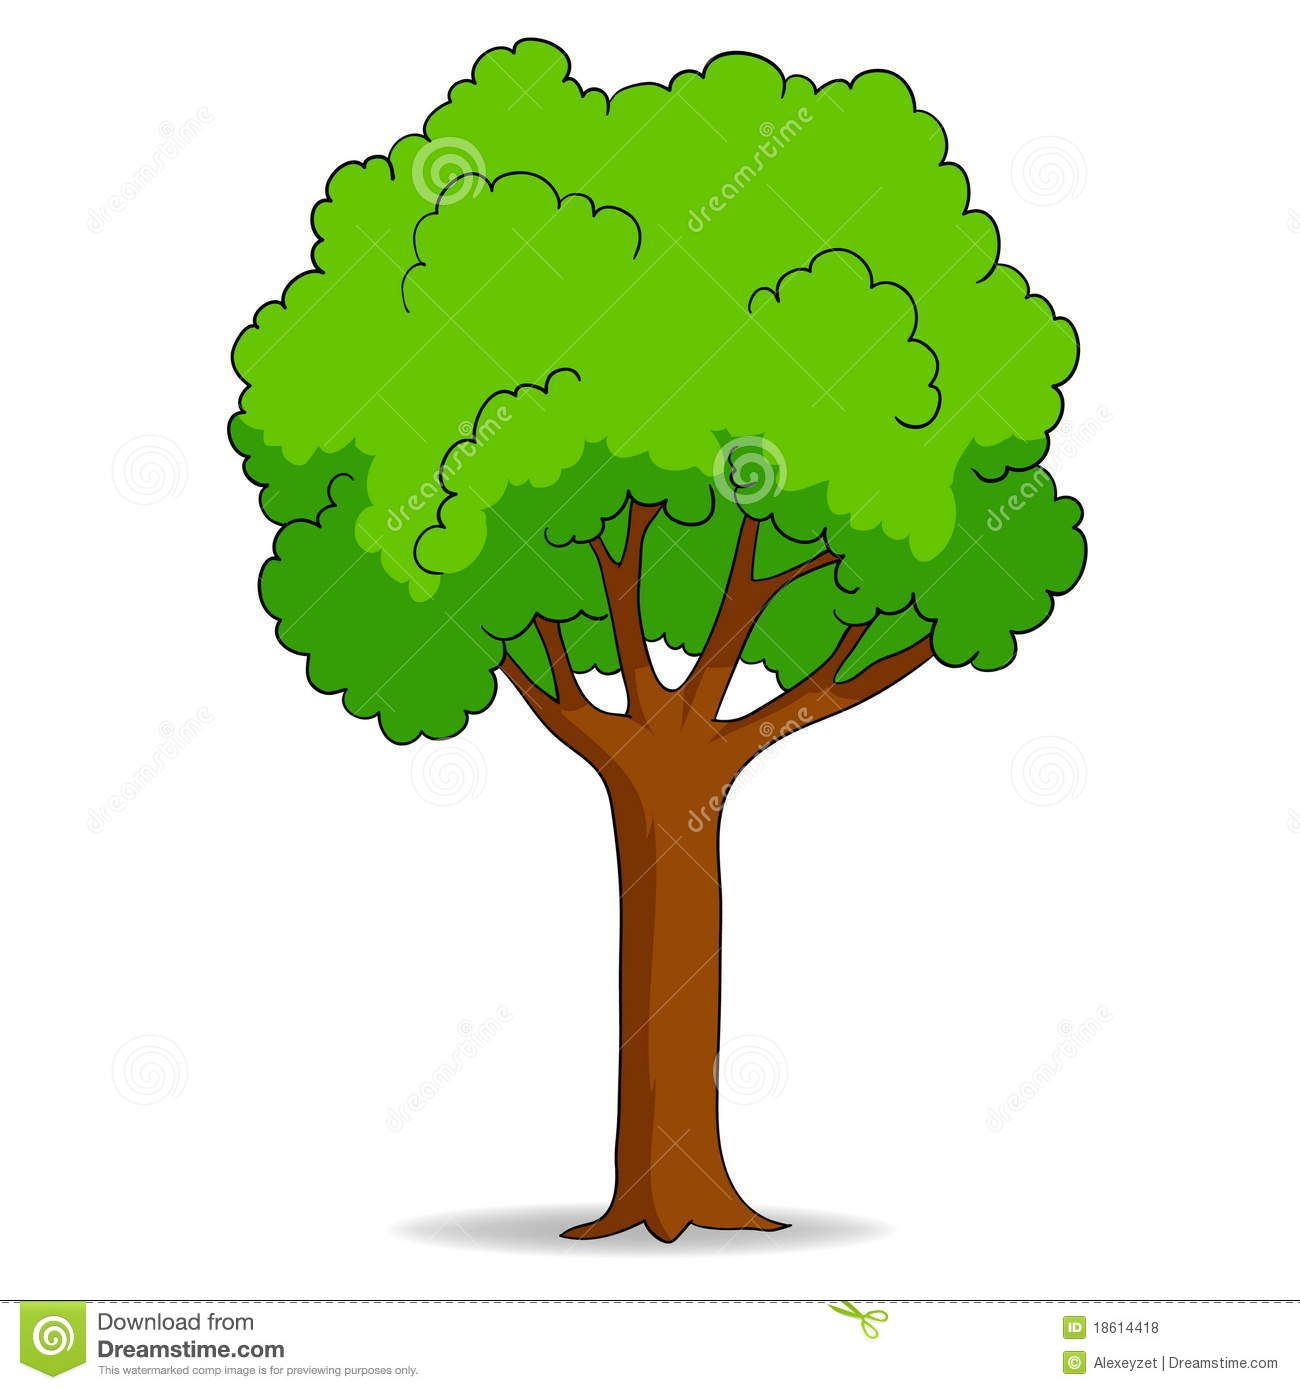 R sultat de recherche d 39 images pour arbre dessin kids diy birthday 39 s tree birthday tree - Dessin arbre simple ...